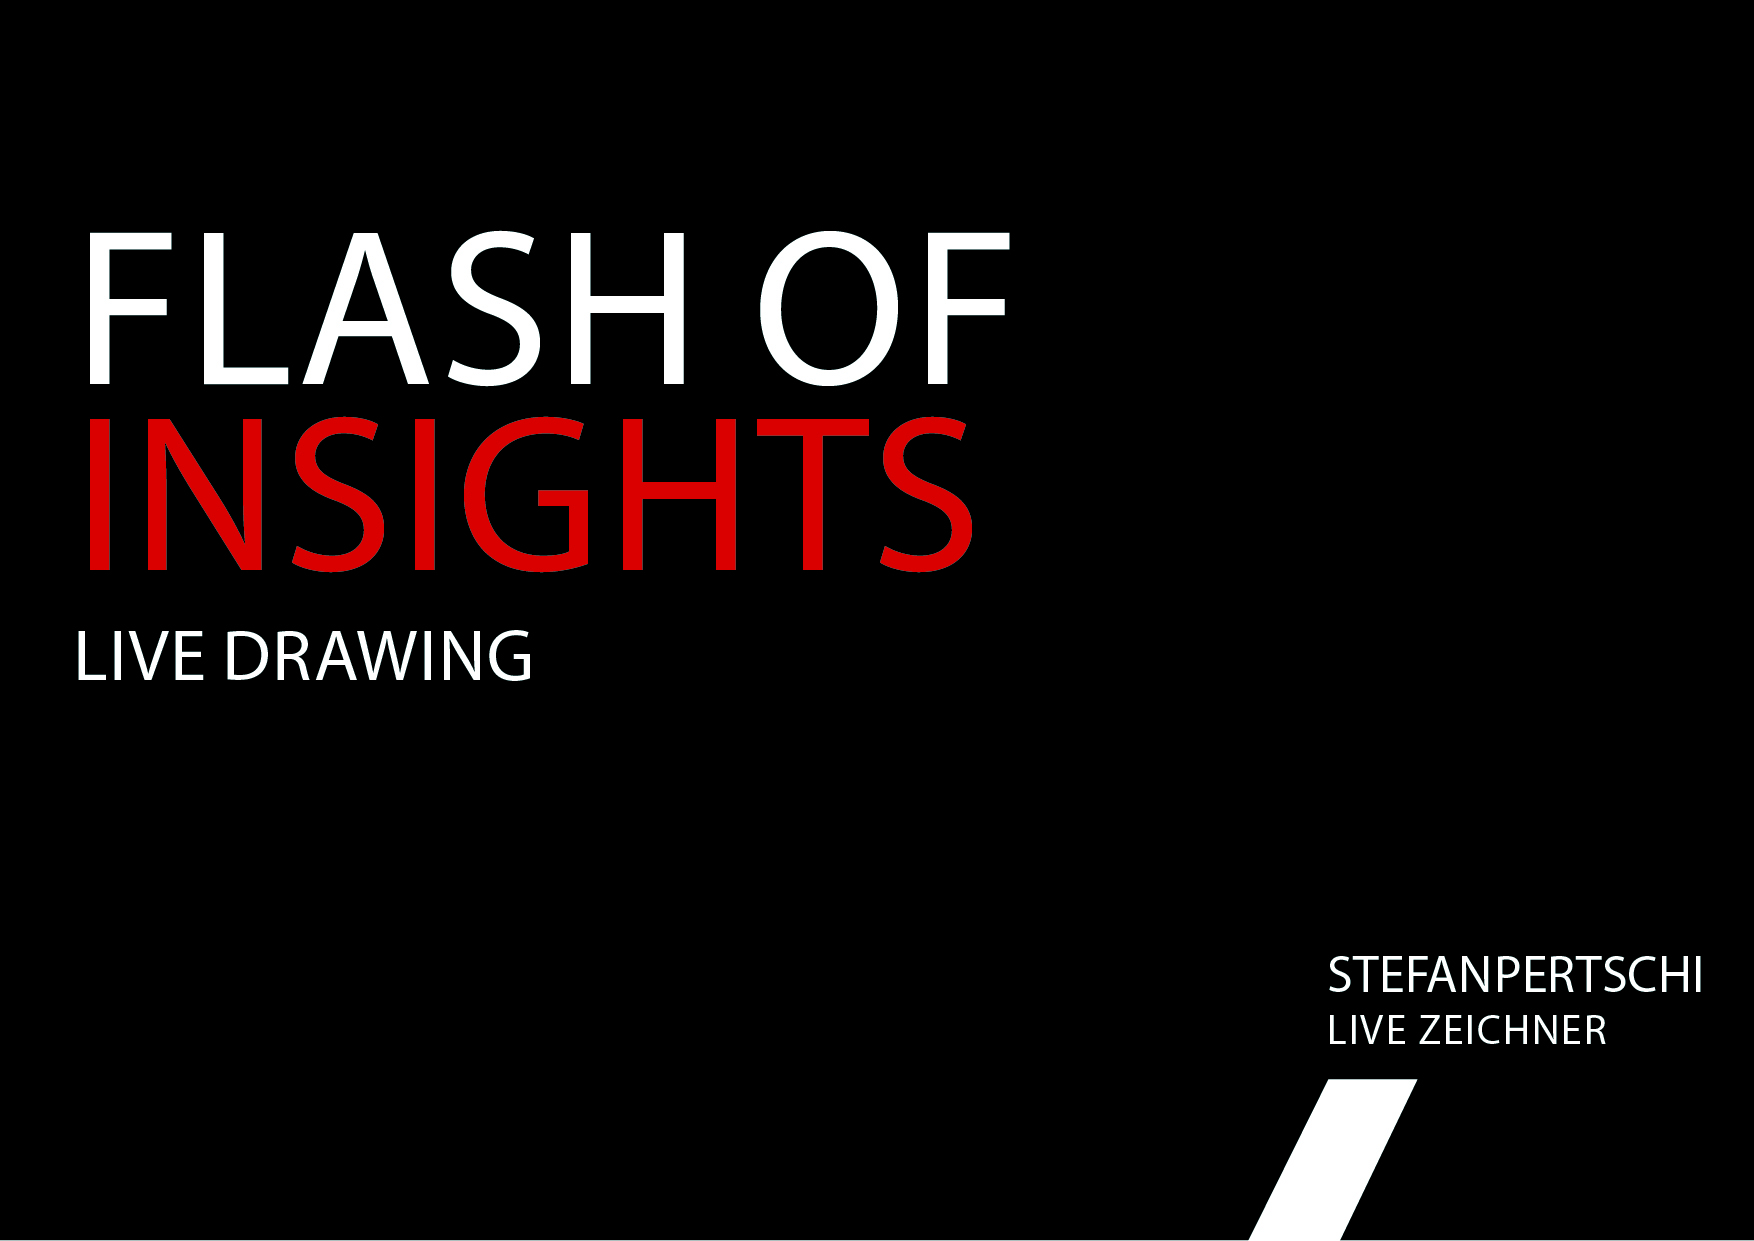 Flash of Insights into Live-Drawing